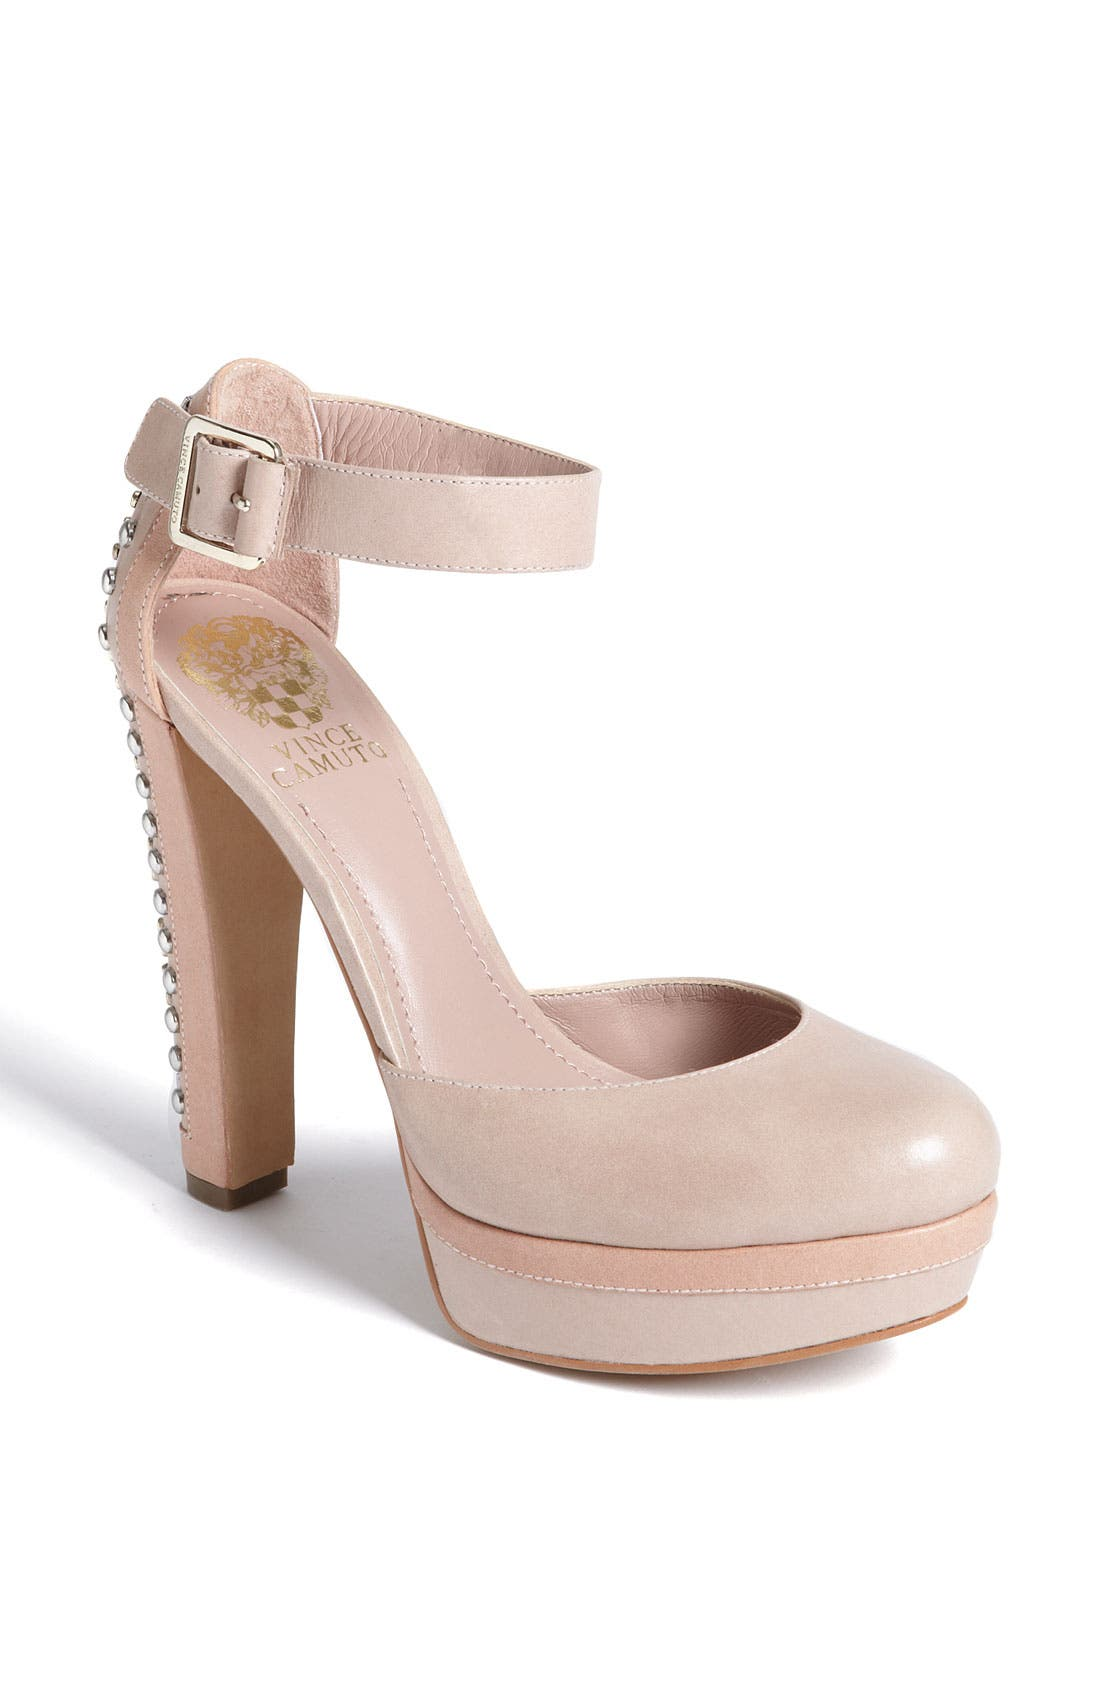 Main Image - Vince Camuto 'Jemmy' Pump